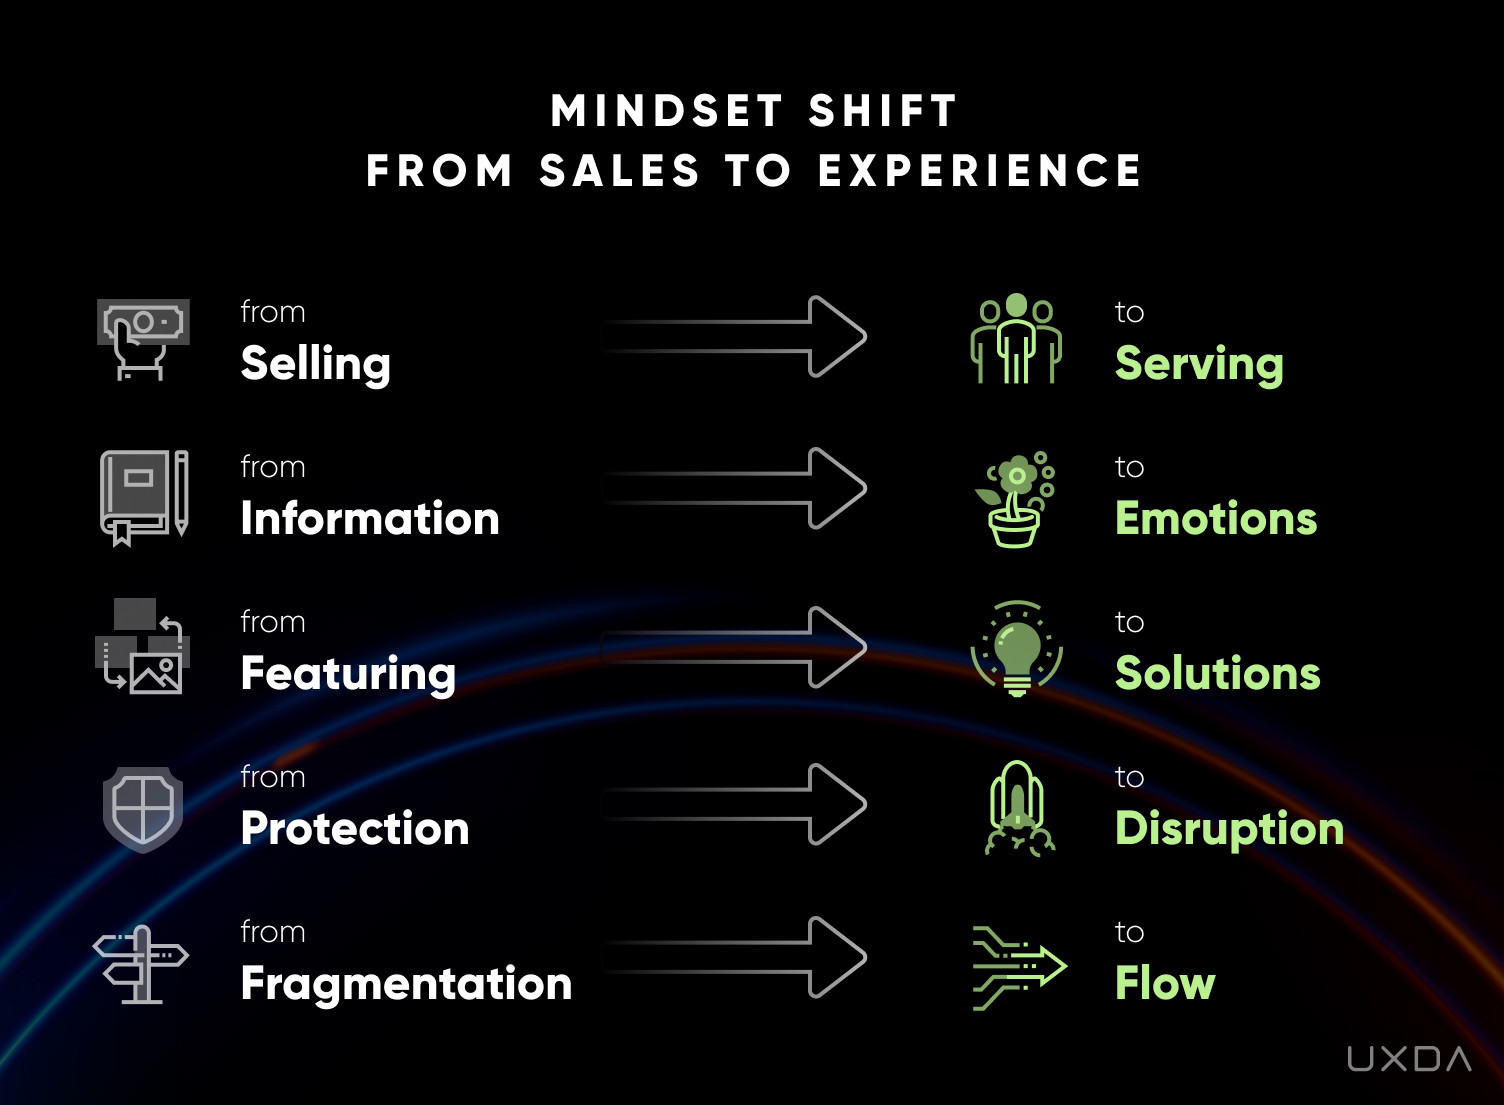 Exceptional Banking & Fintech Product Design with Soul - Mindset Shift